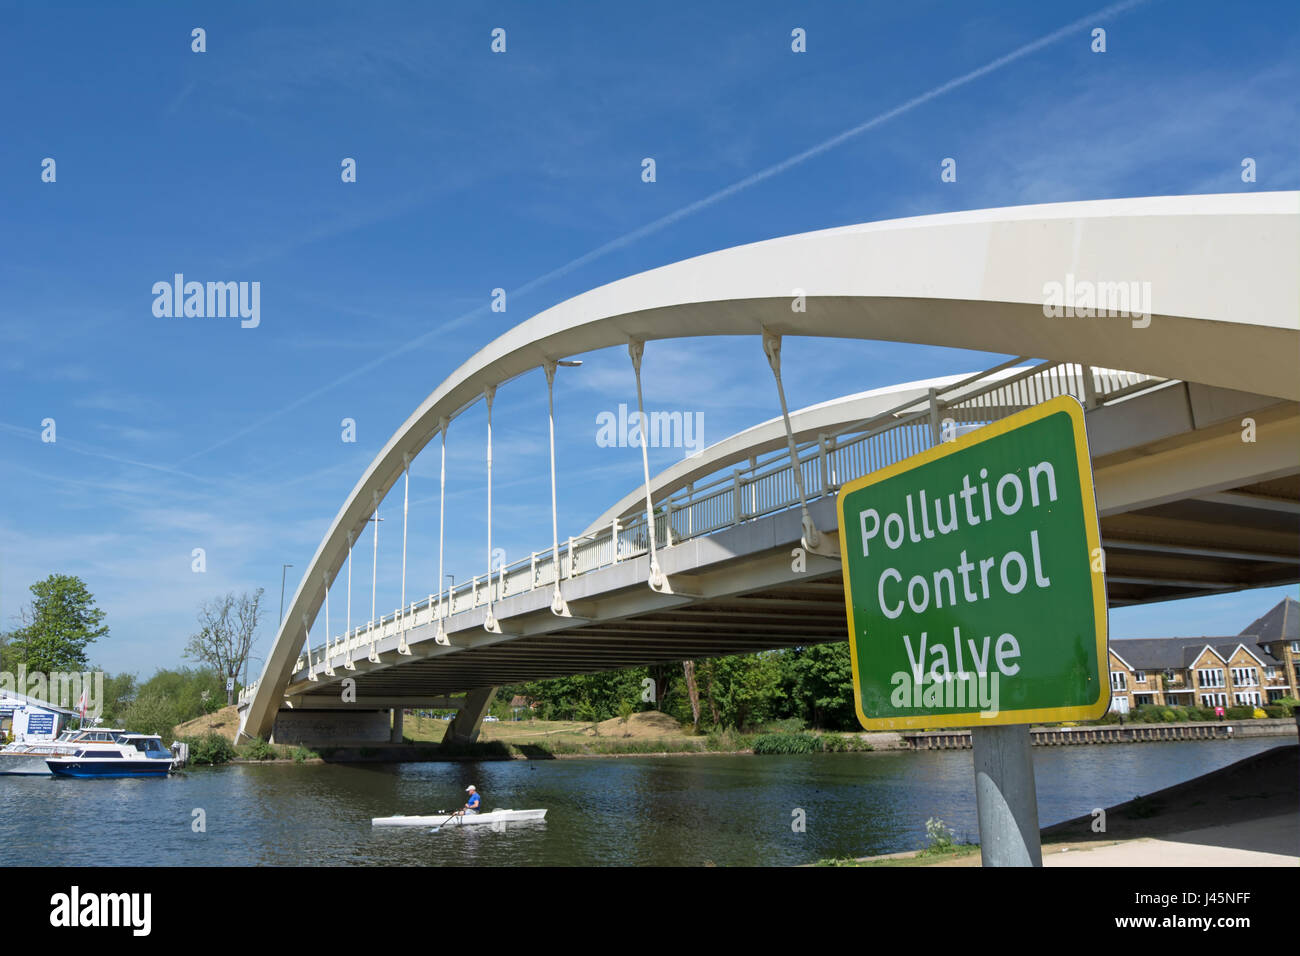 pollution control valve sign adjacent to walton bridge, crossing the river thames between shepperton and walton - Stock Image